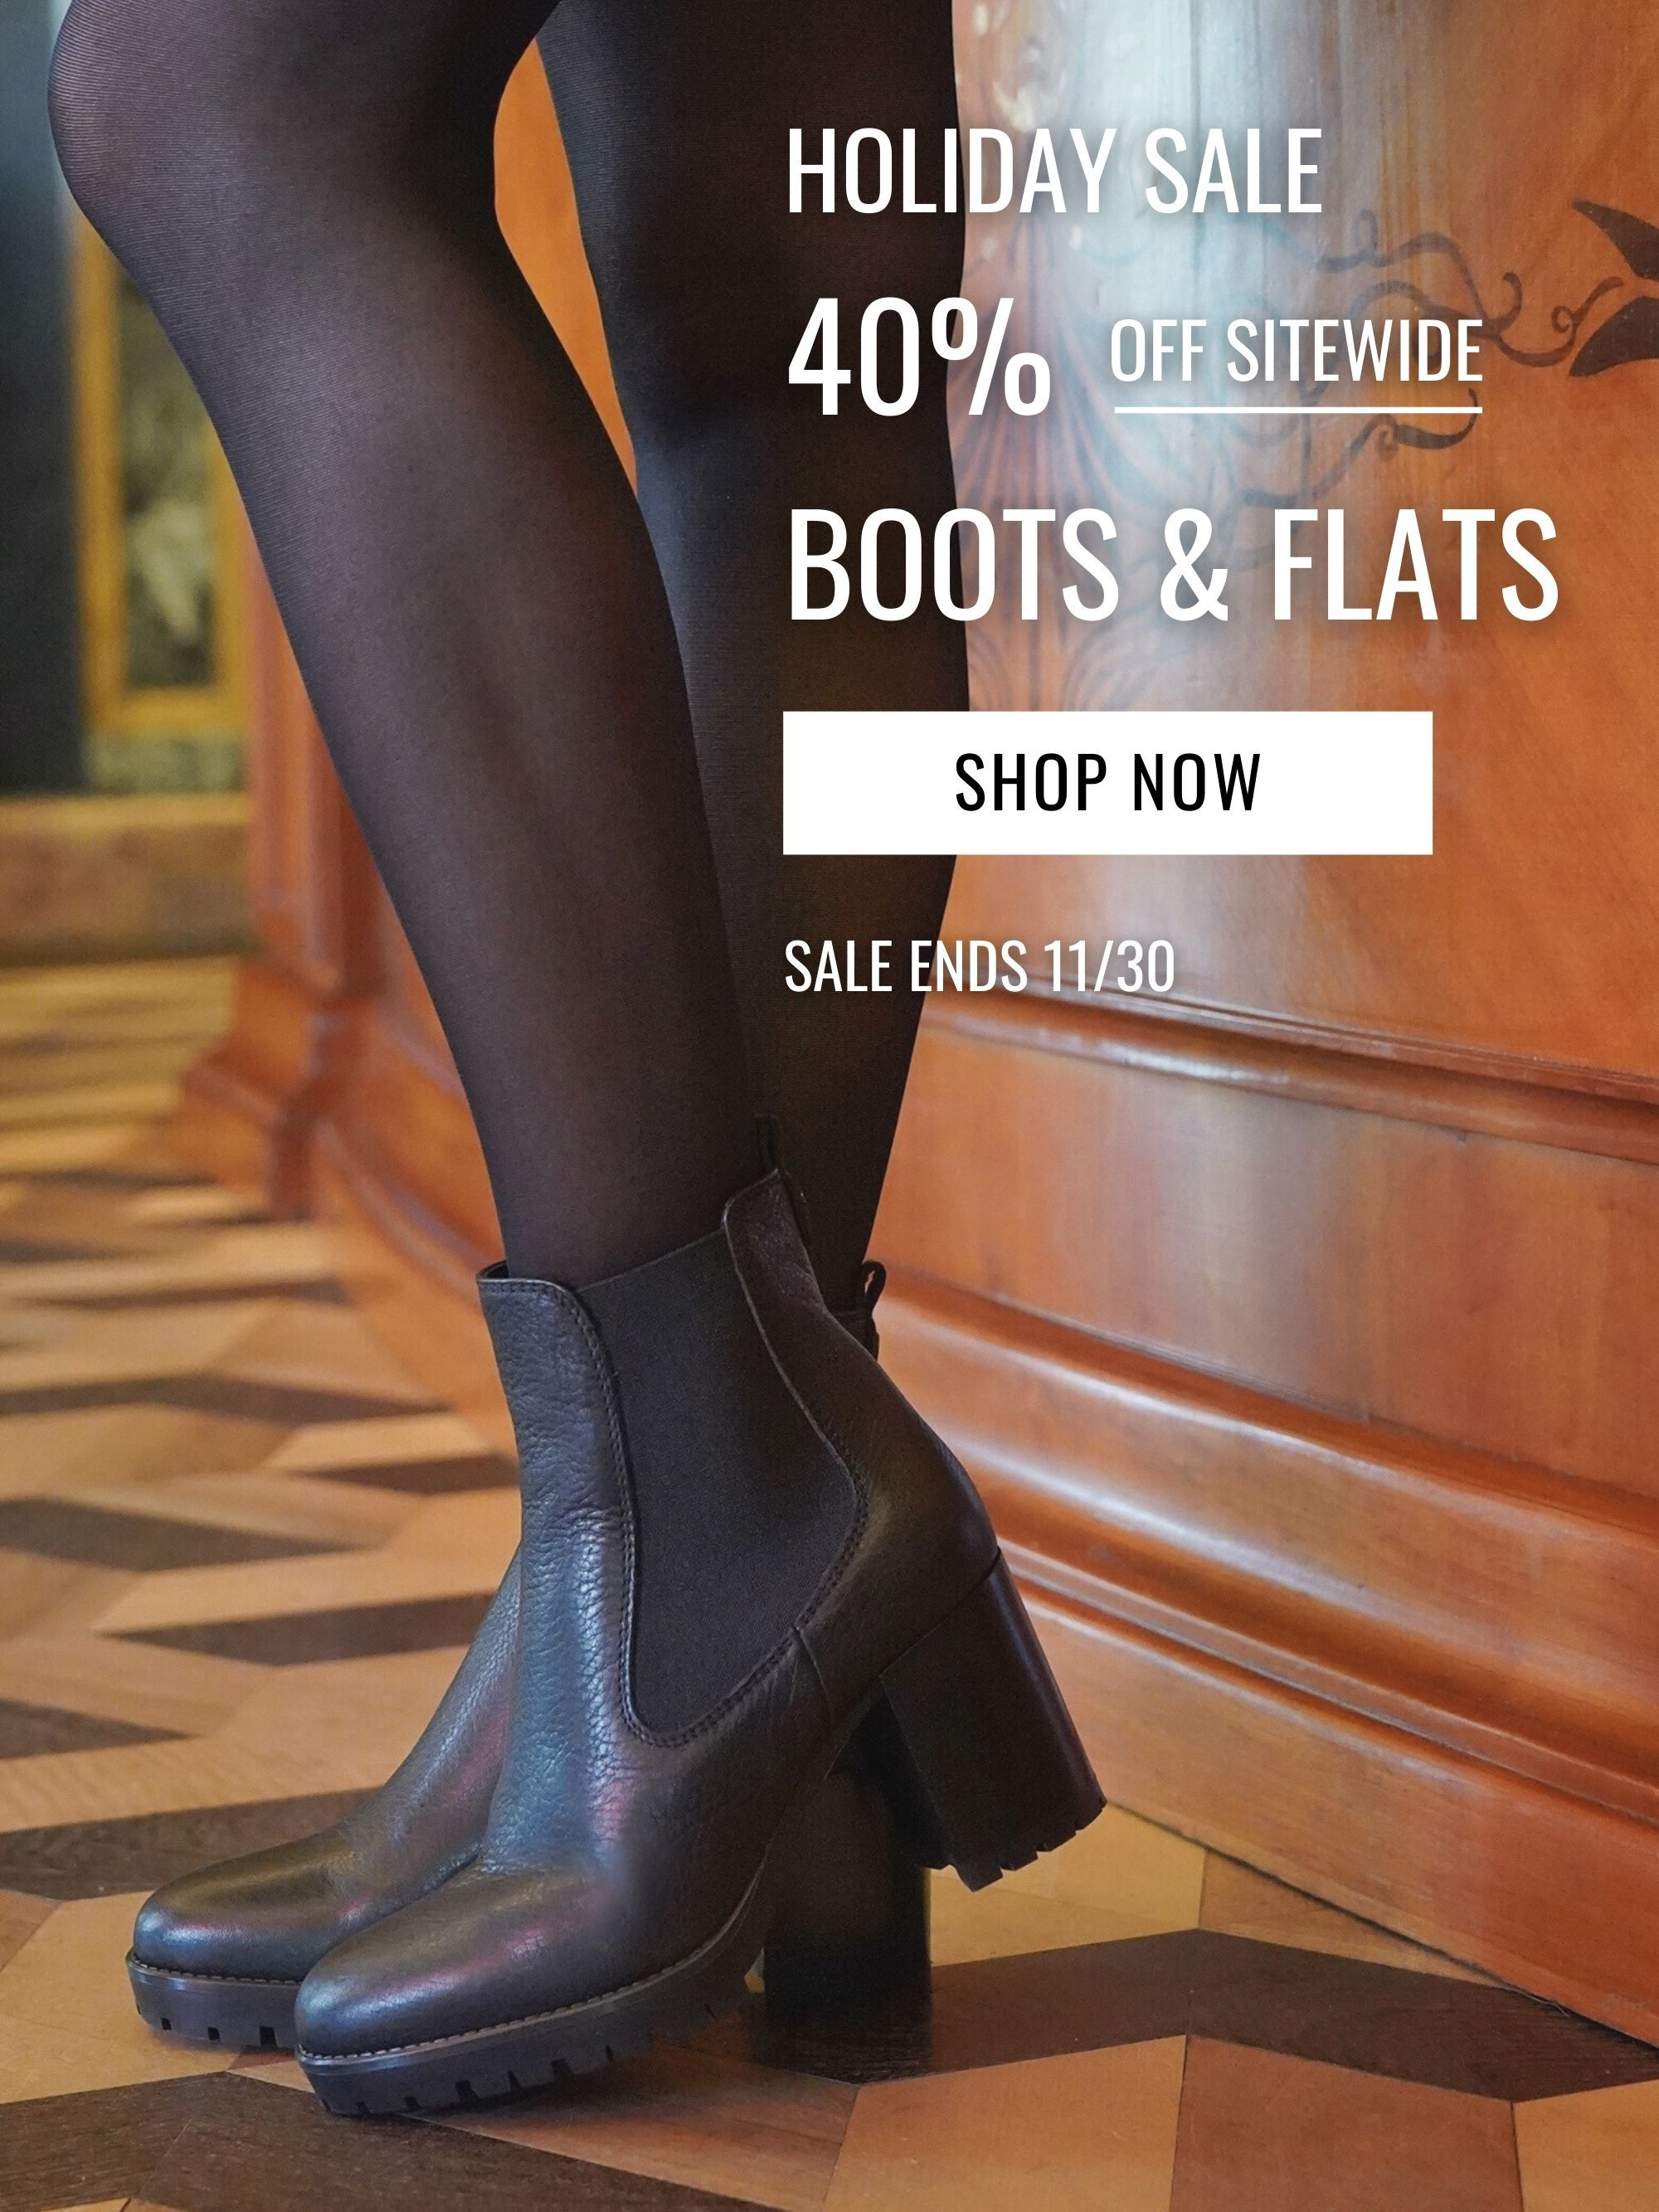 Holiday Sale - 40% Off Sitewide - Boots & Flats (mobile)